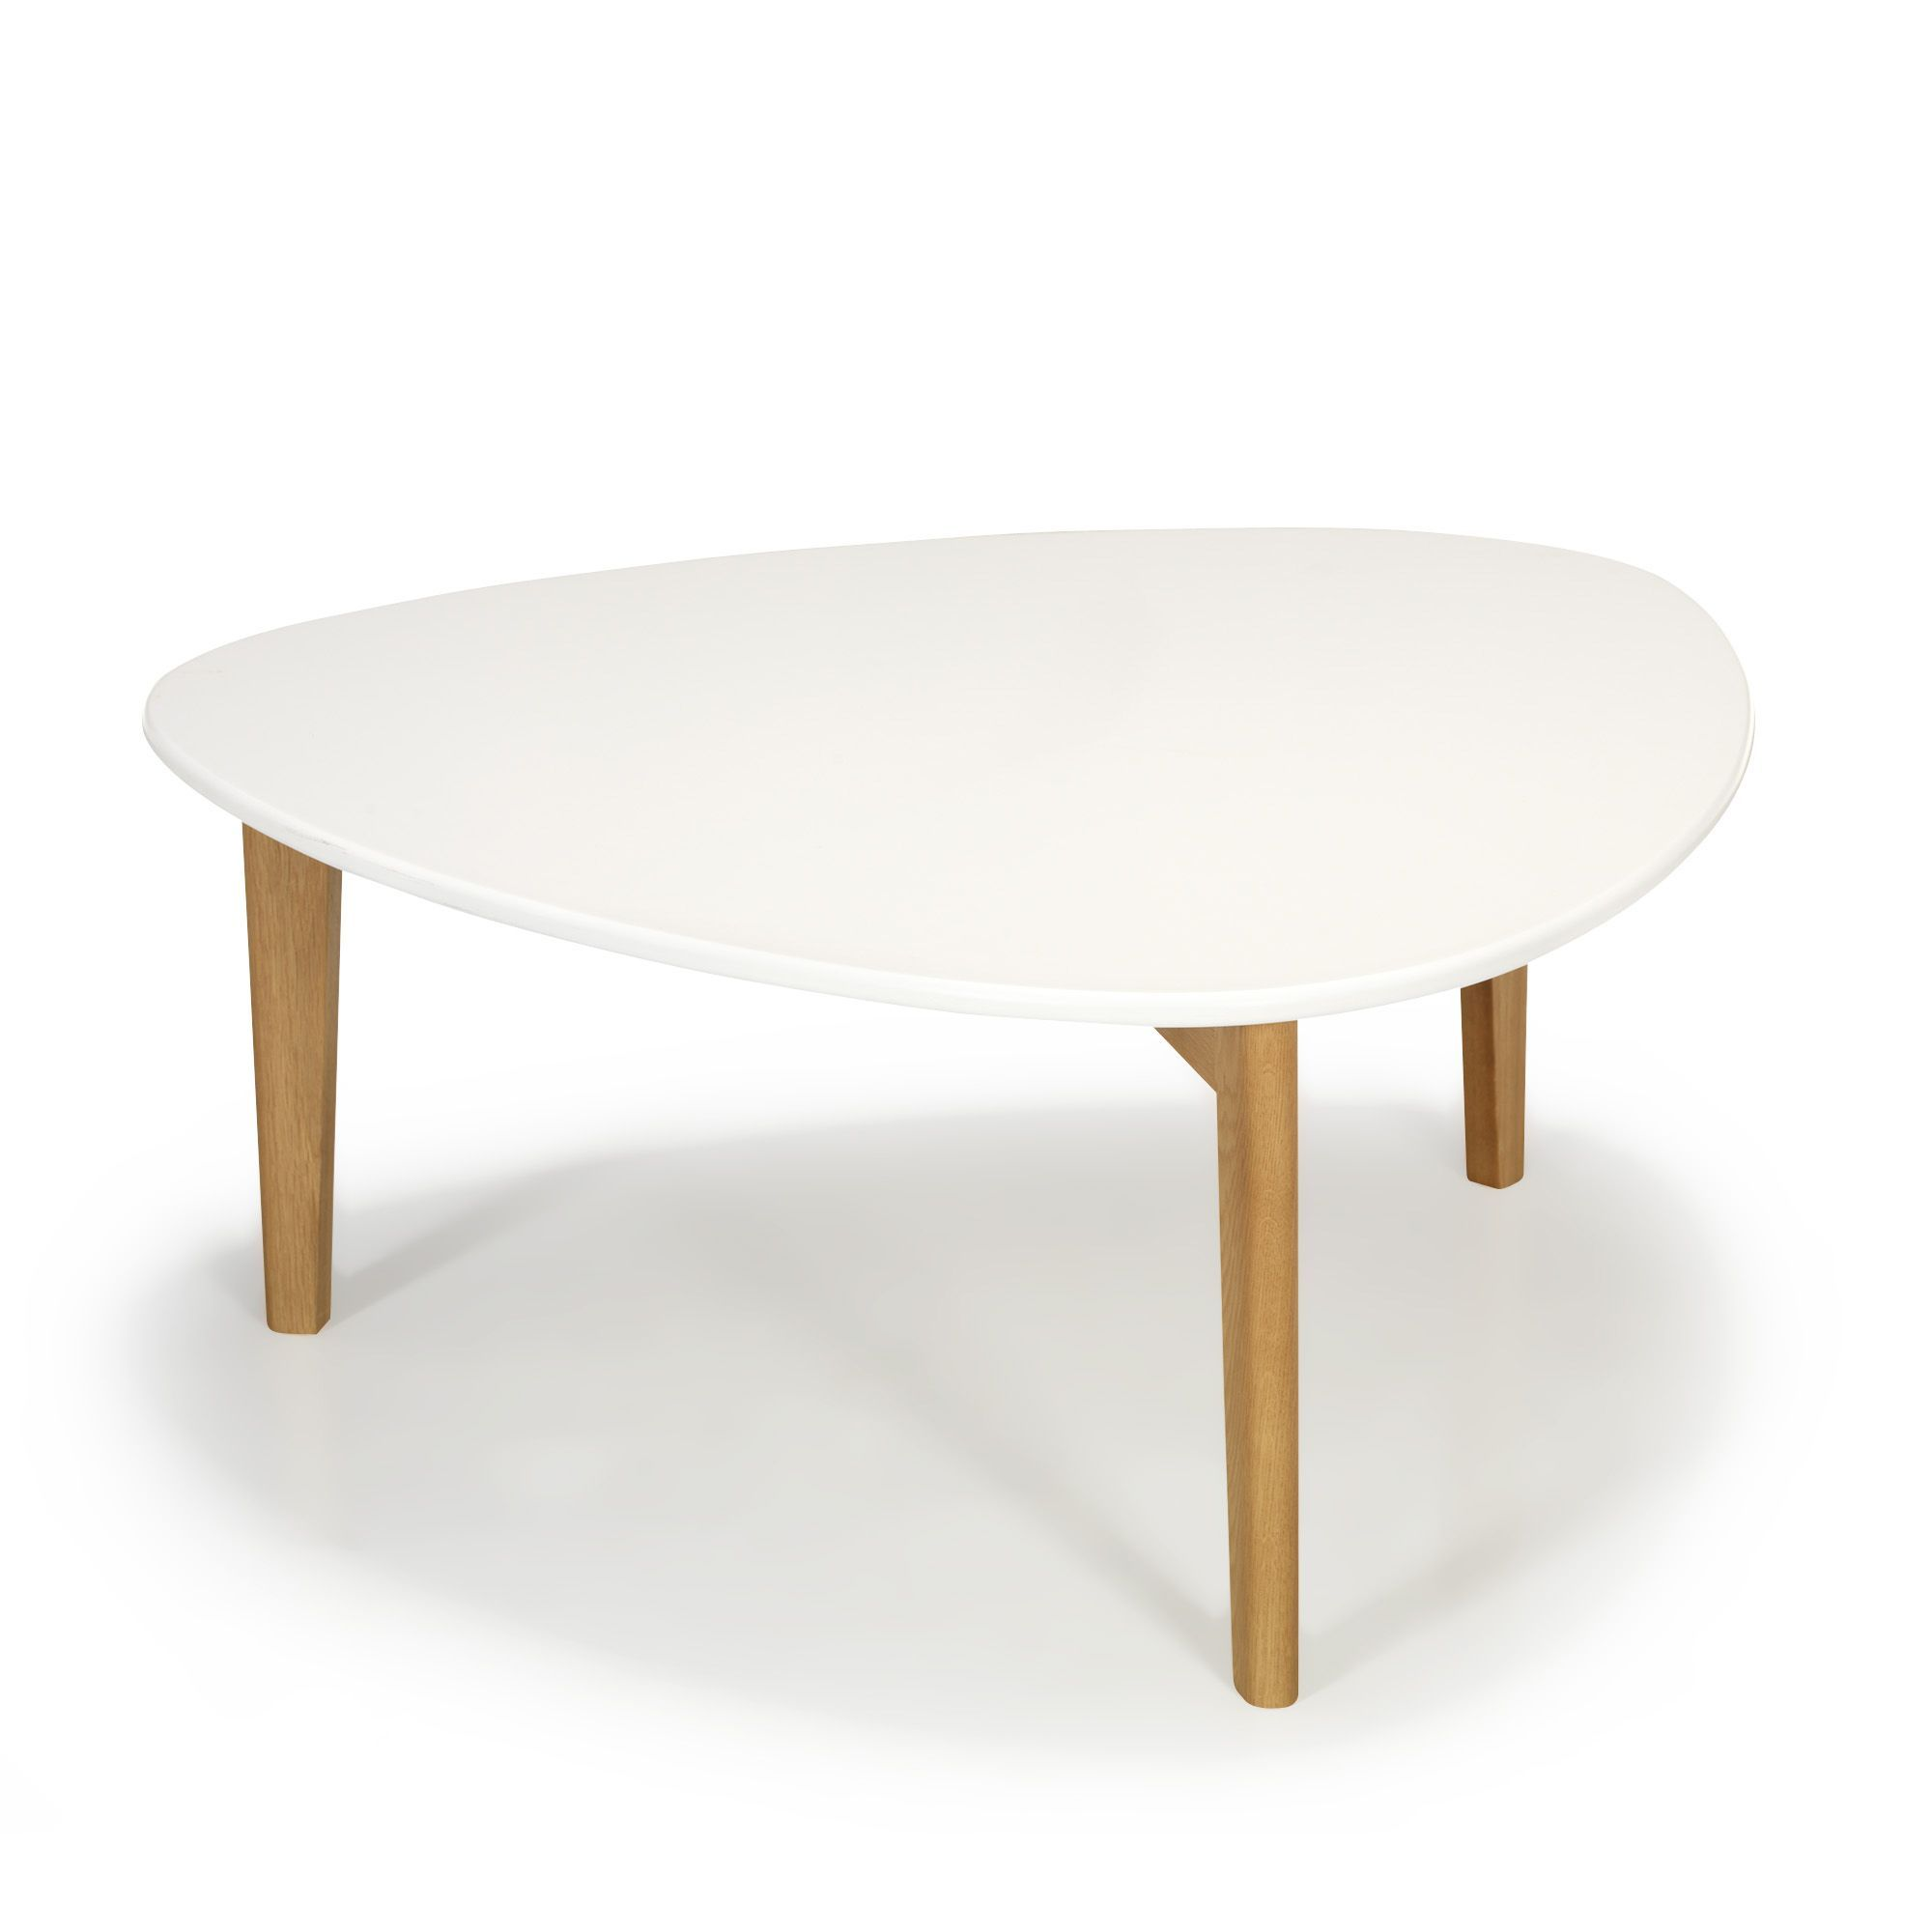 Good Table Basse Ronde Alinea #3: Table Basse Vintage Scandinave Blanche 80cm Blanc Et Naturel - Siwa - Les  Tables Basses -